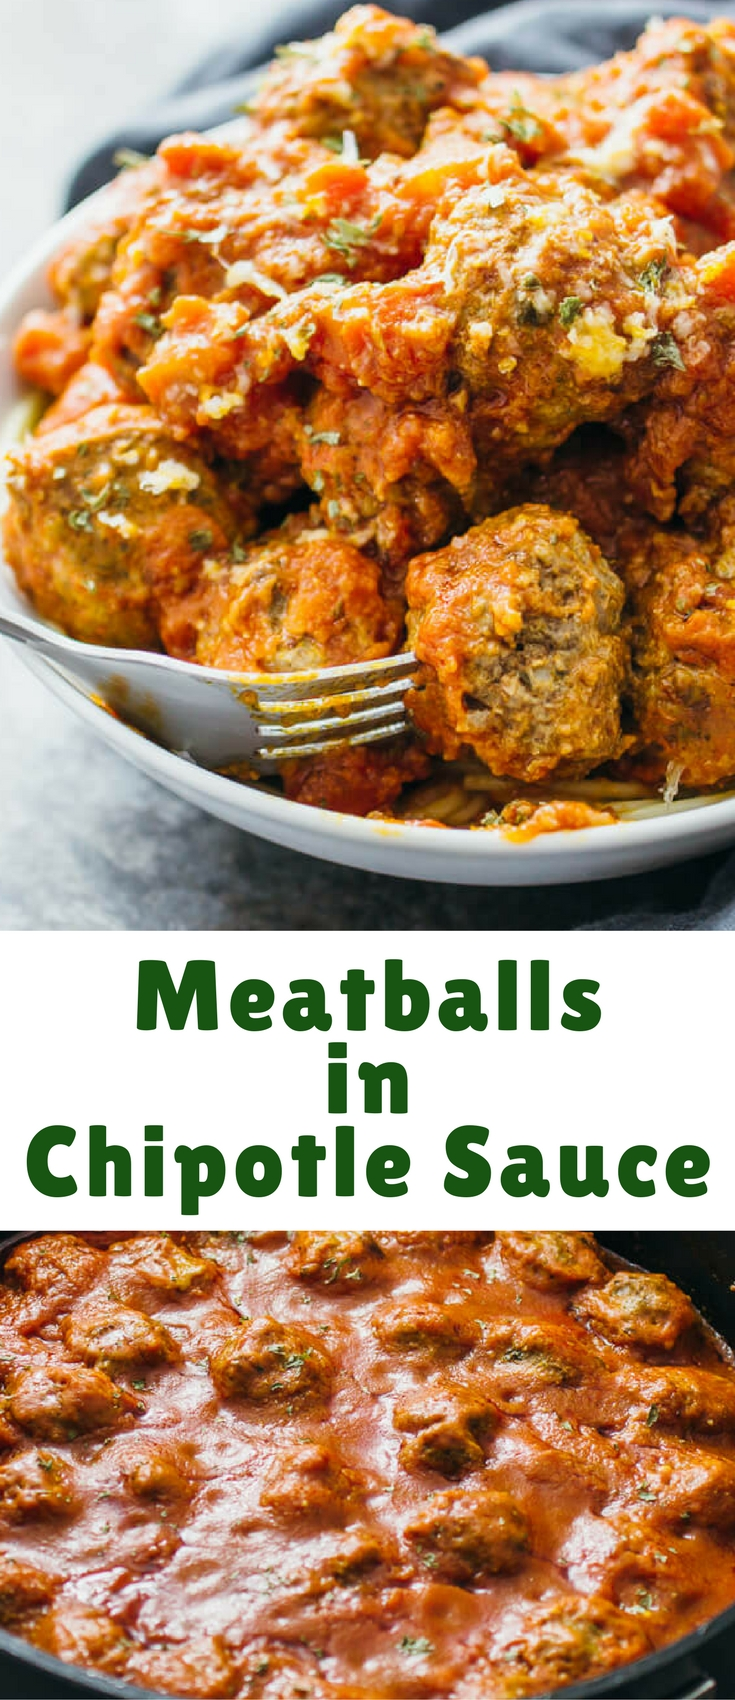 This is an easy and fast recipe for homemade meatballs that do not involve baking nor the crockpot. These meatballs are cooked via stovetop simmering in a deliciously hot and spicy chipotle sauce.